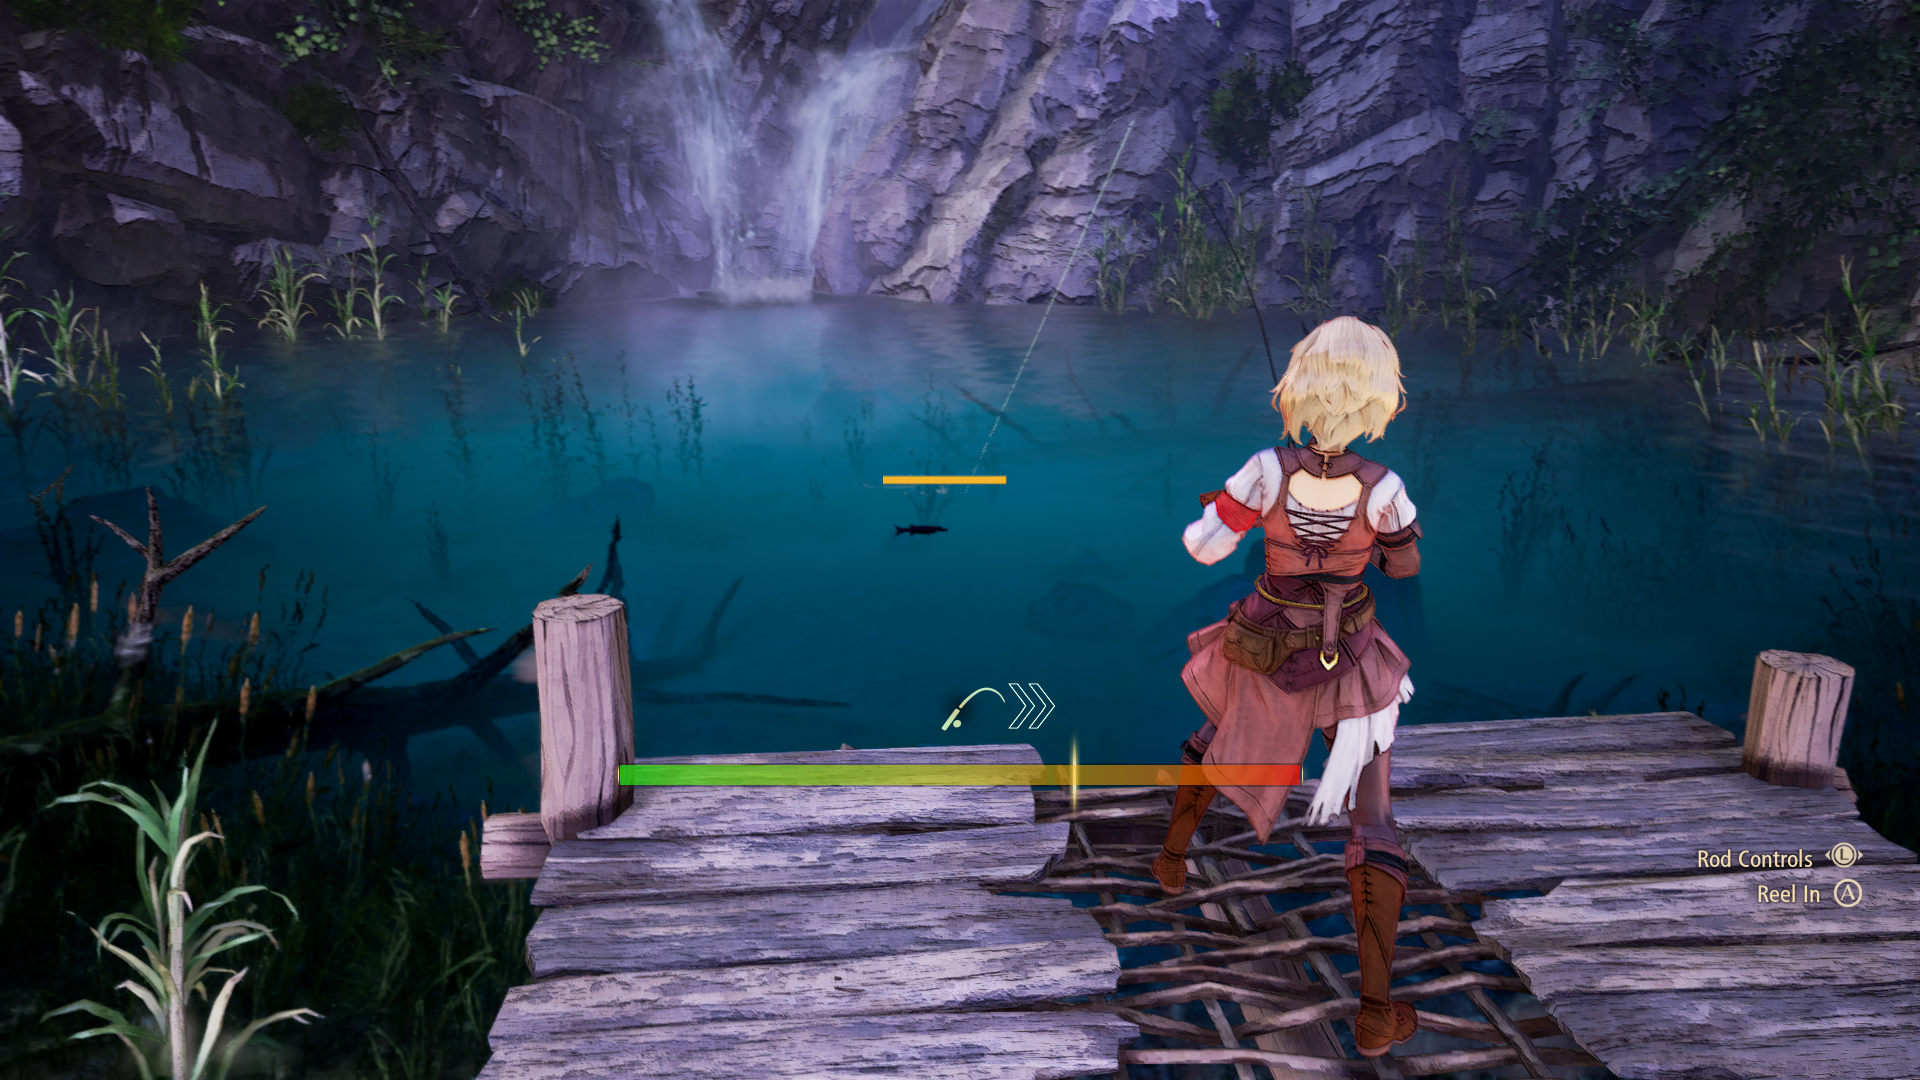 tales-of-arise-how-to-fish-phase-4